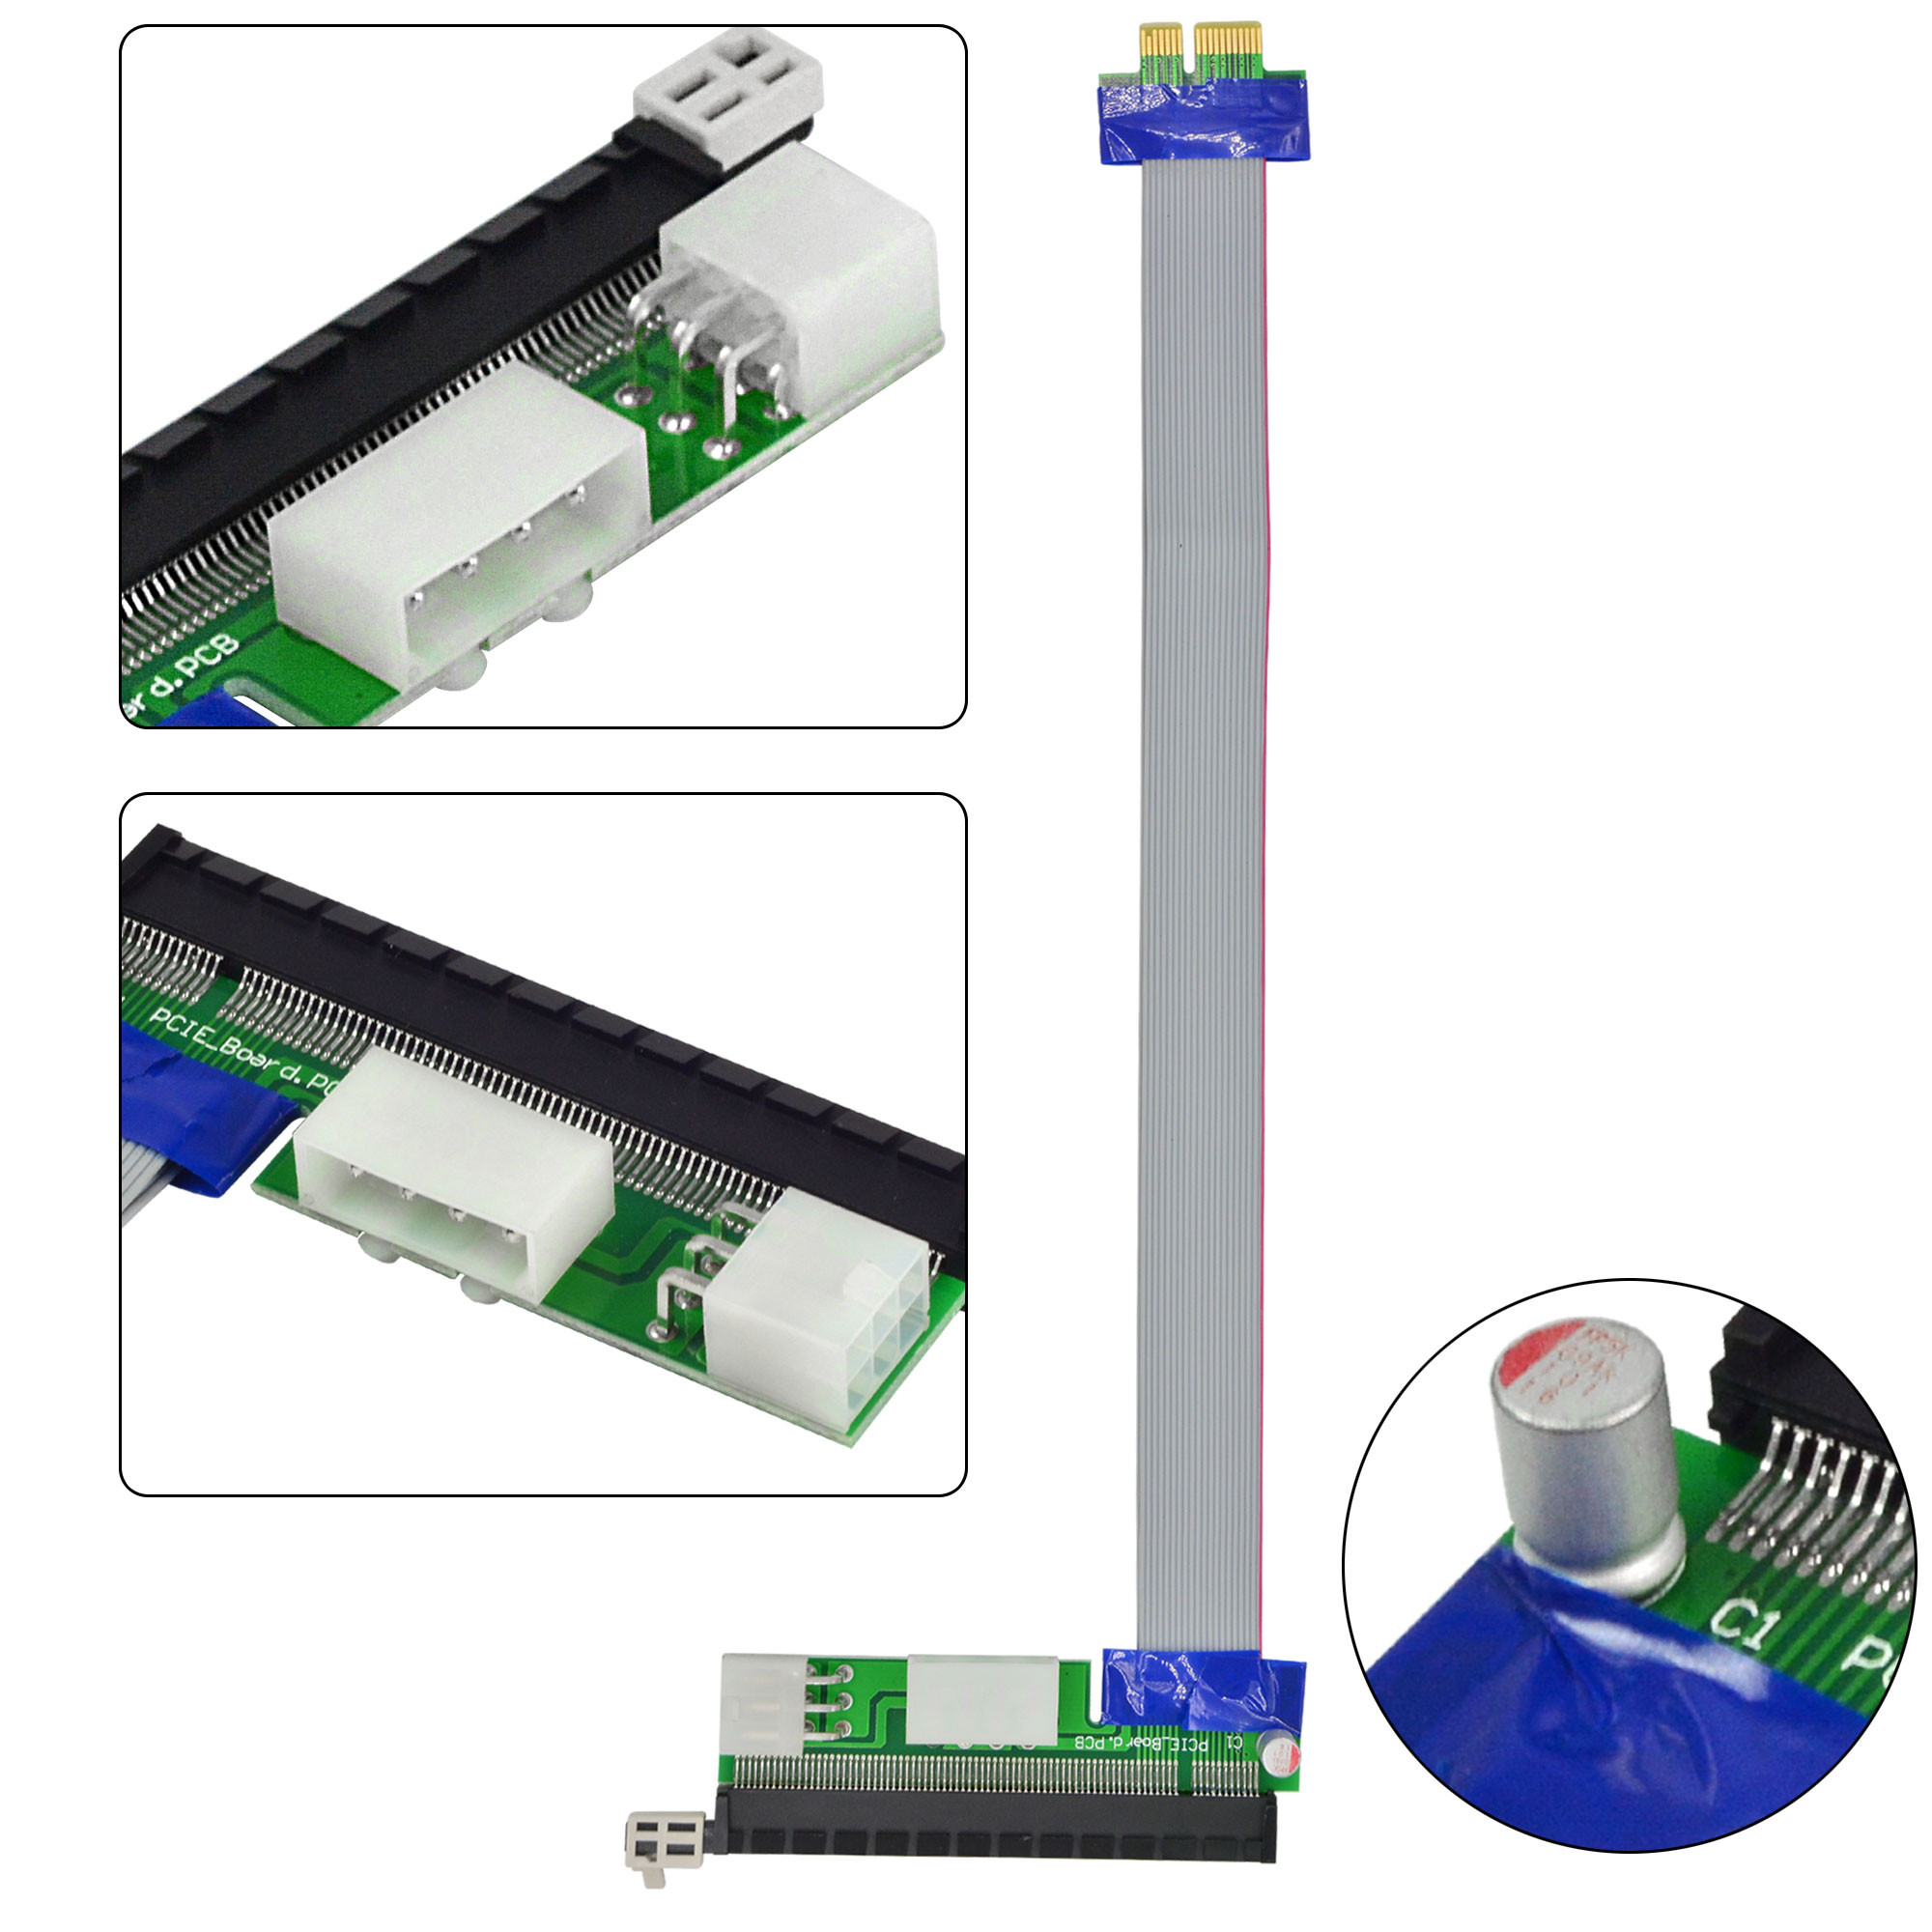 MENGS® PCI-E 1X to 16X Extender Riser Card Extension Cable + Dual Molex Power Connector for Bitcoin Mining - 257mm